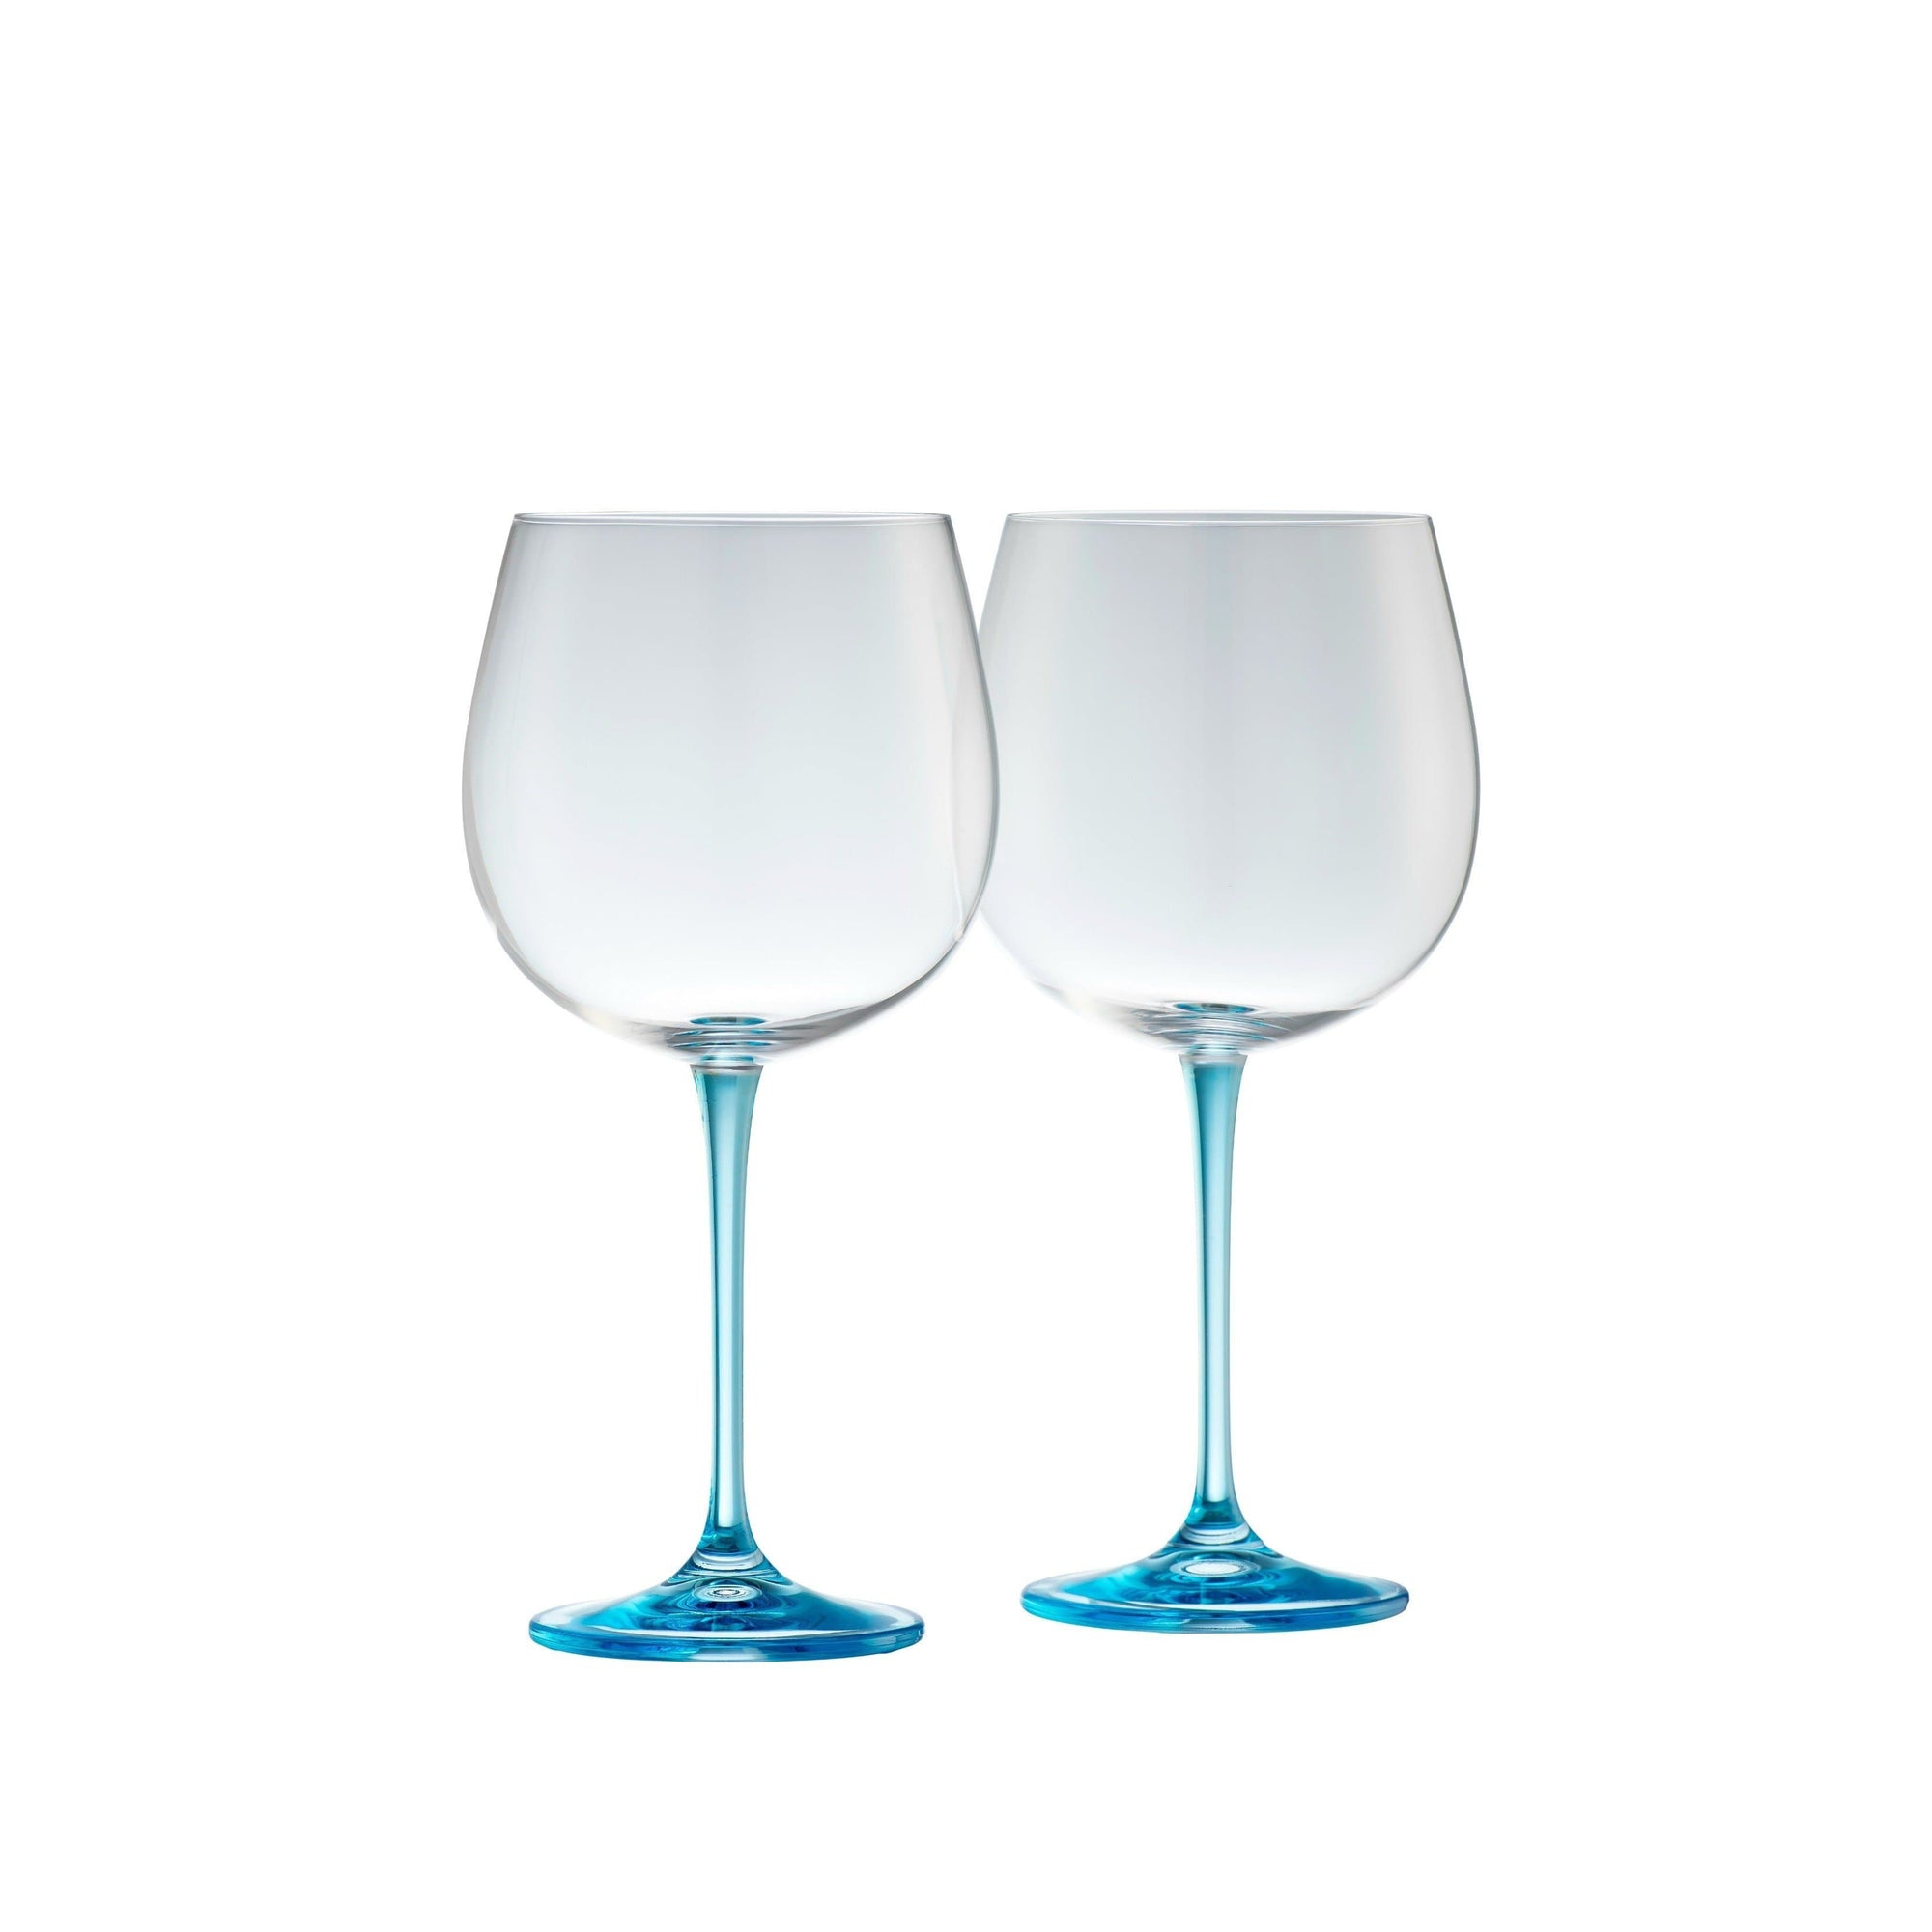 Gin & Tonic Glass Pair - Blue